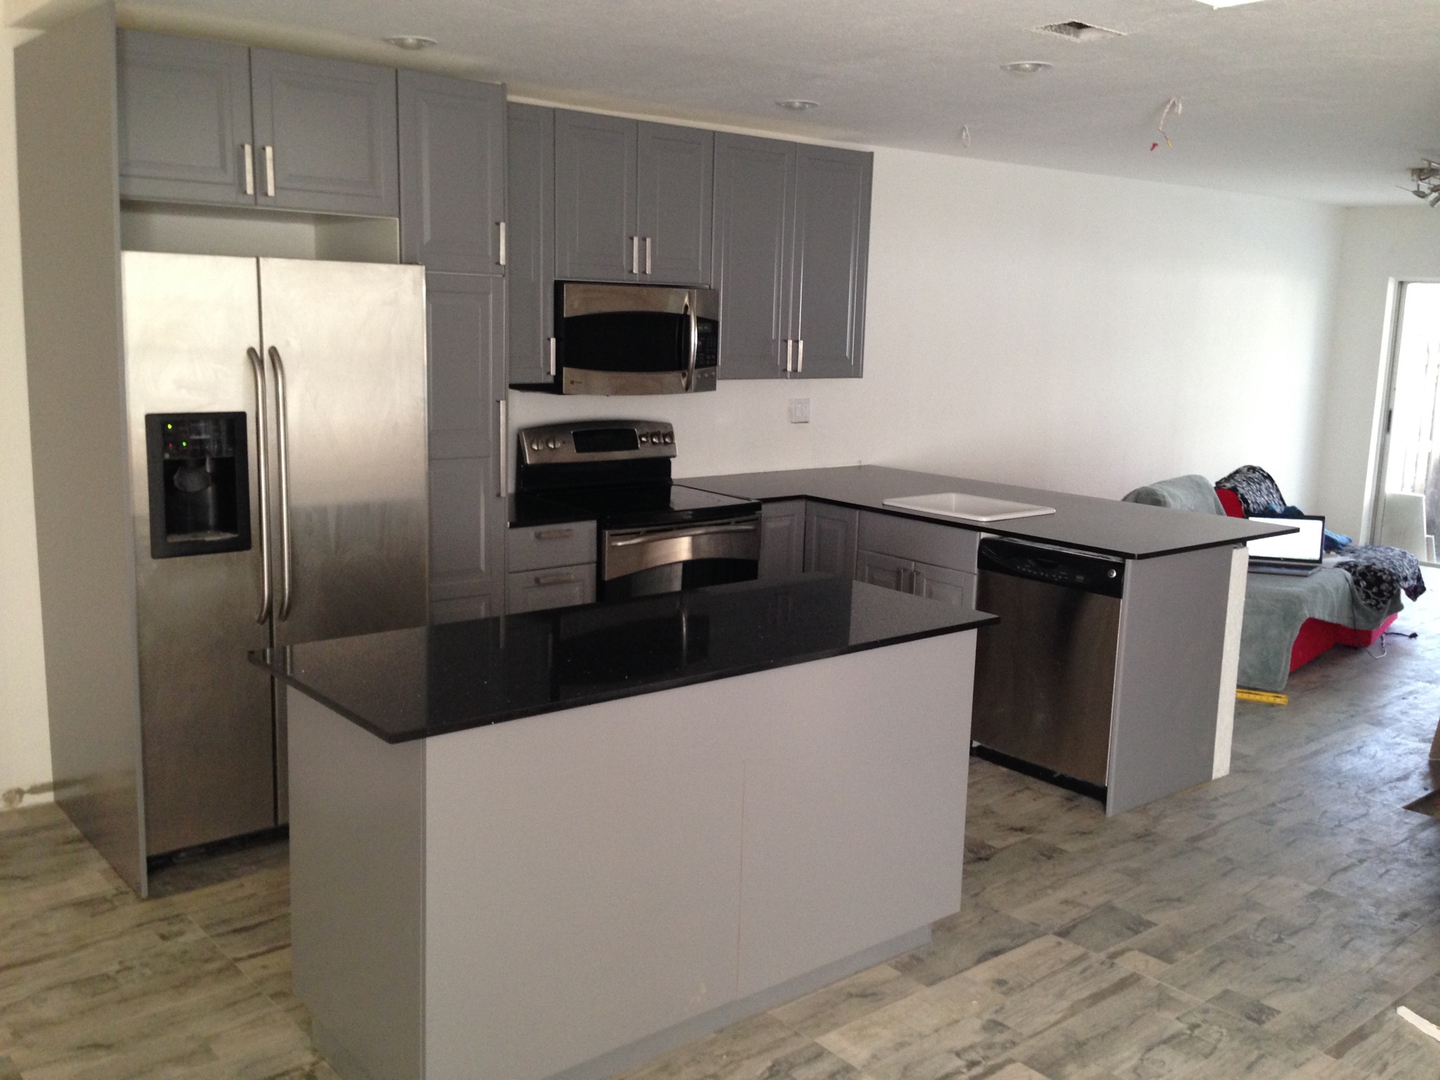 Uncategorized Kitchen Cabinets Miami ikea kitchen cabinets installations in miami broward west palm beach fl